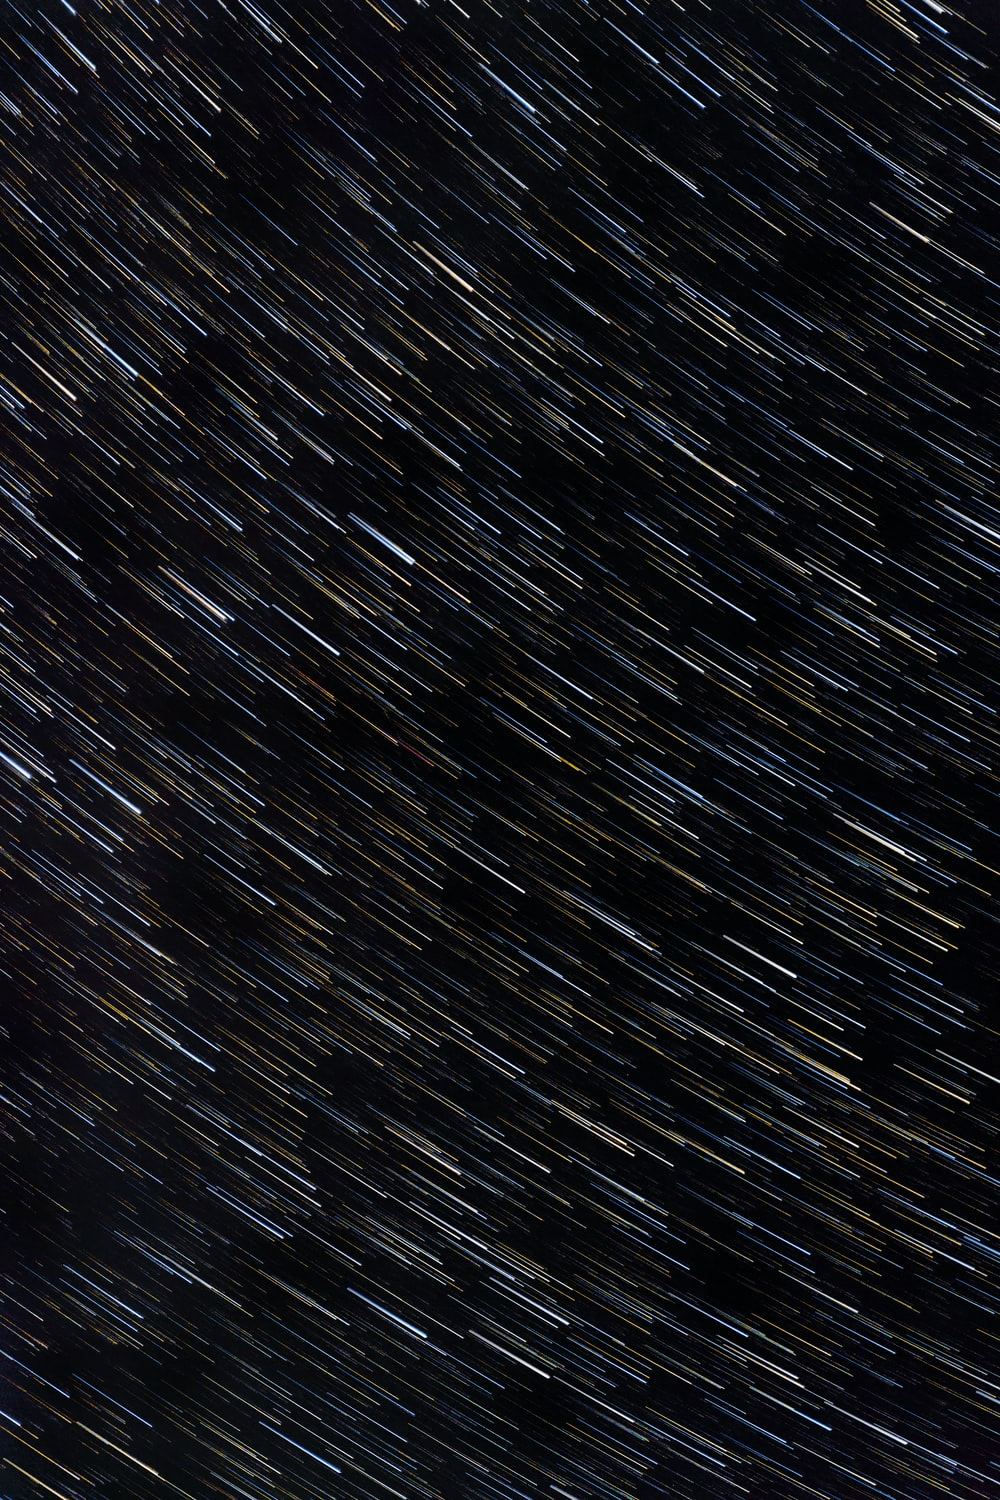 A startrail image.